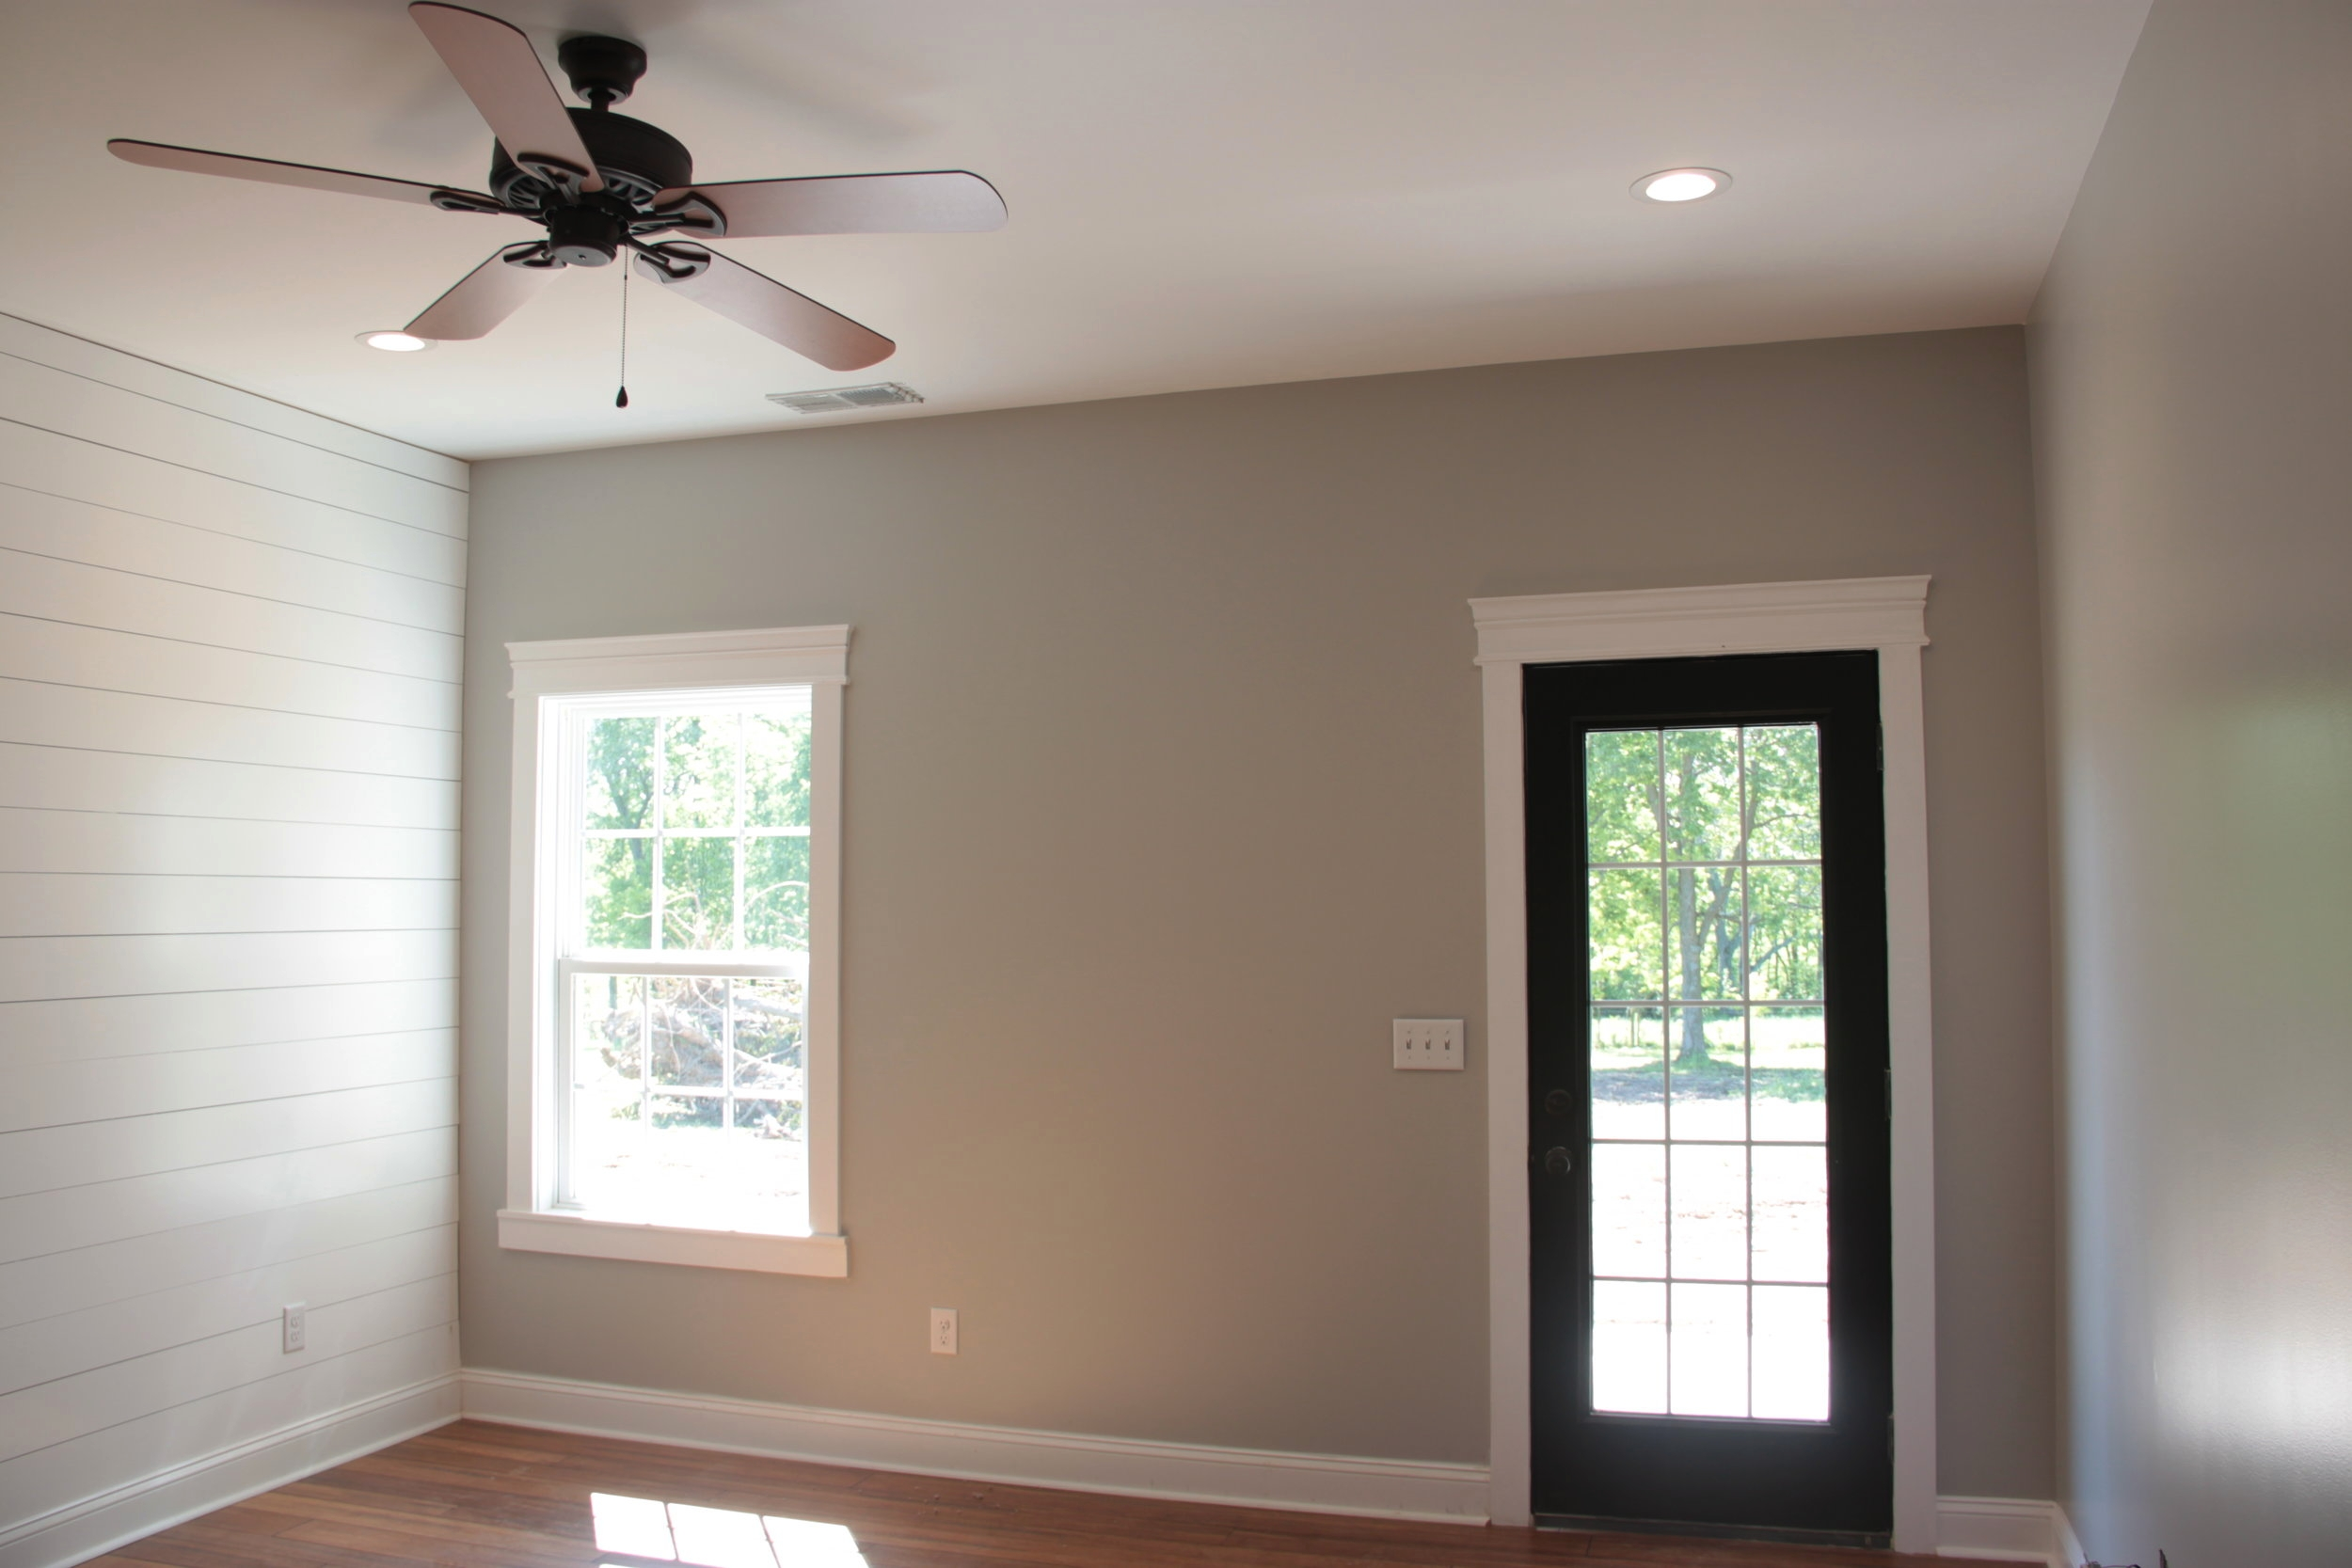 The master bedroom also features shiplap along with beautiful trim, and a bold color choice for the exterior patio door.